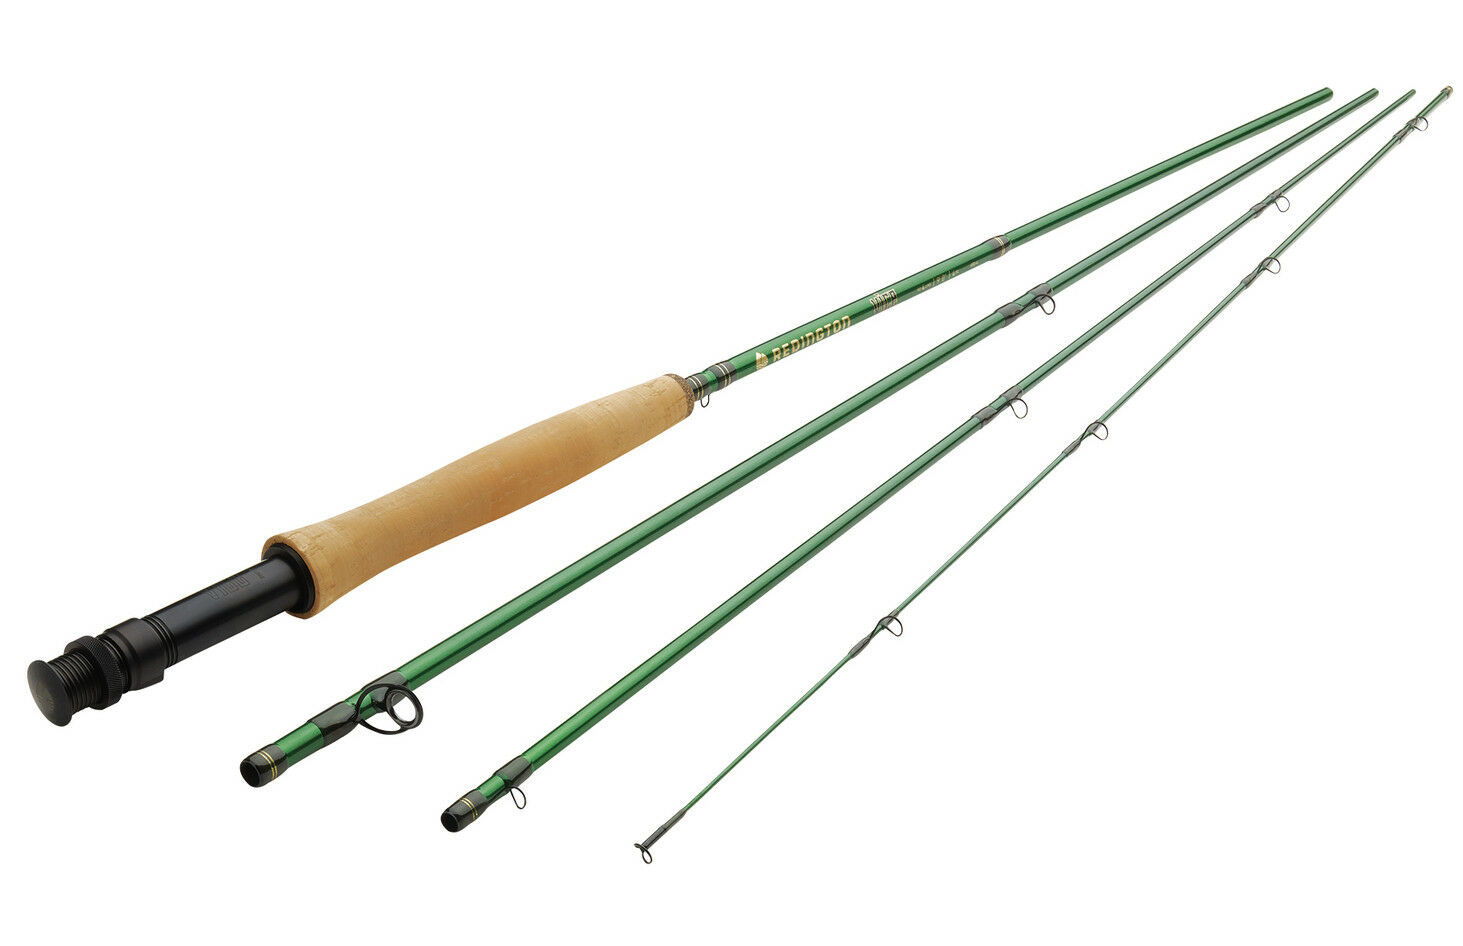 Redington  Vice 590-4 Fly Rod, 9', 5wt, 4pc - New  welcome to order